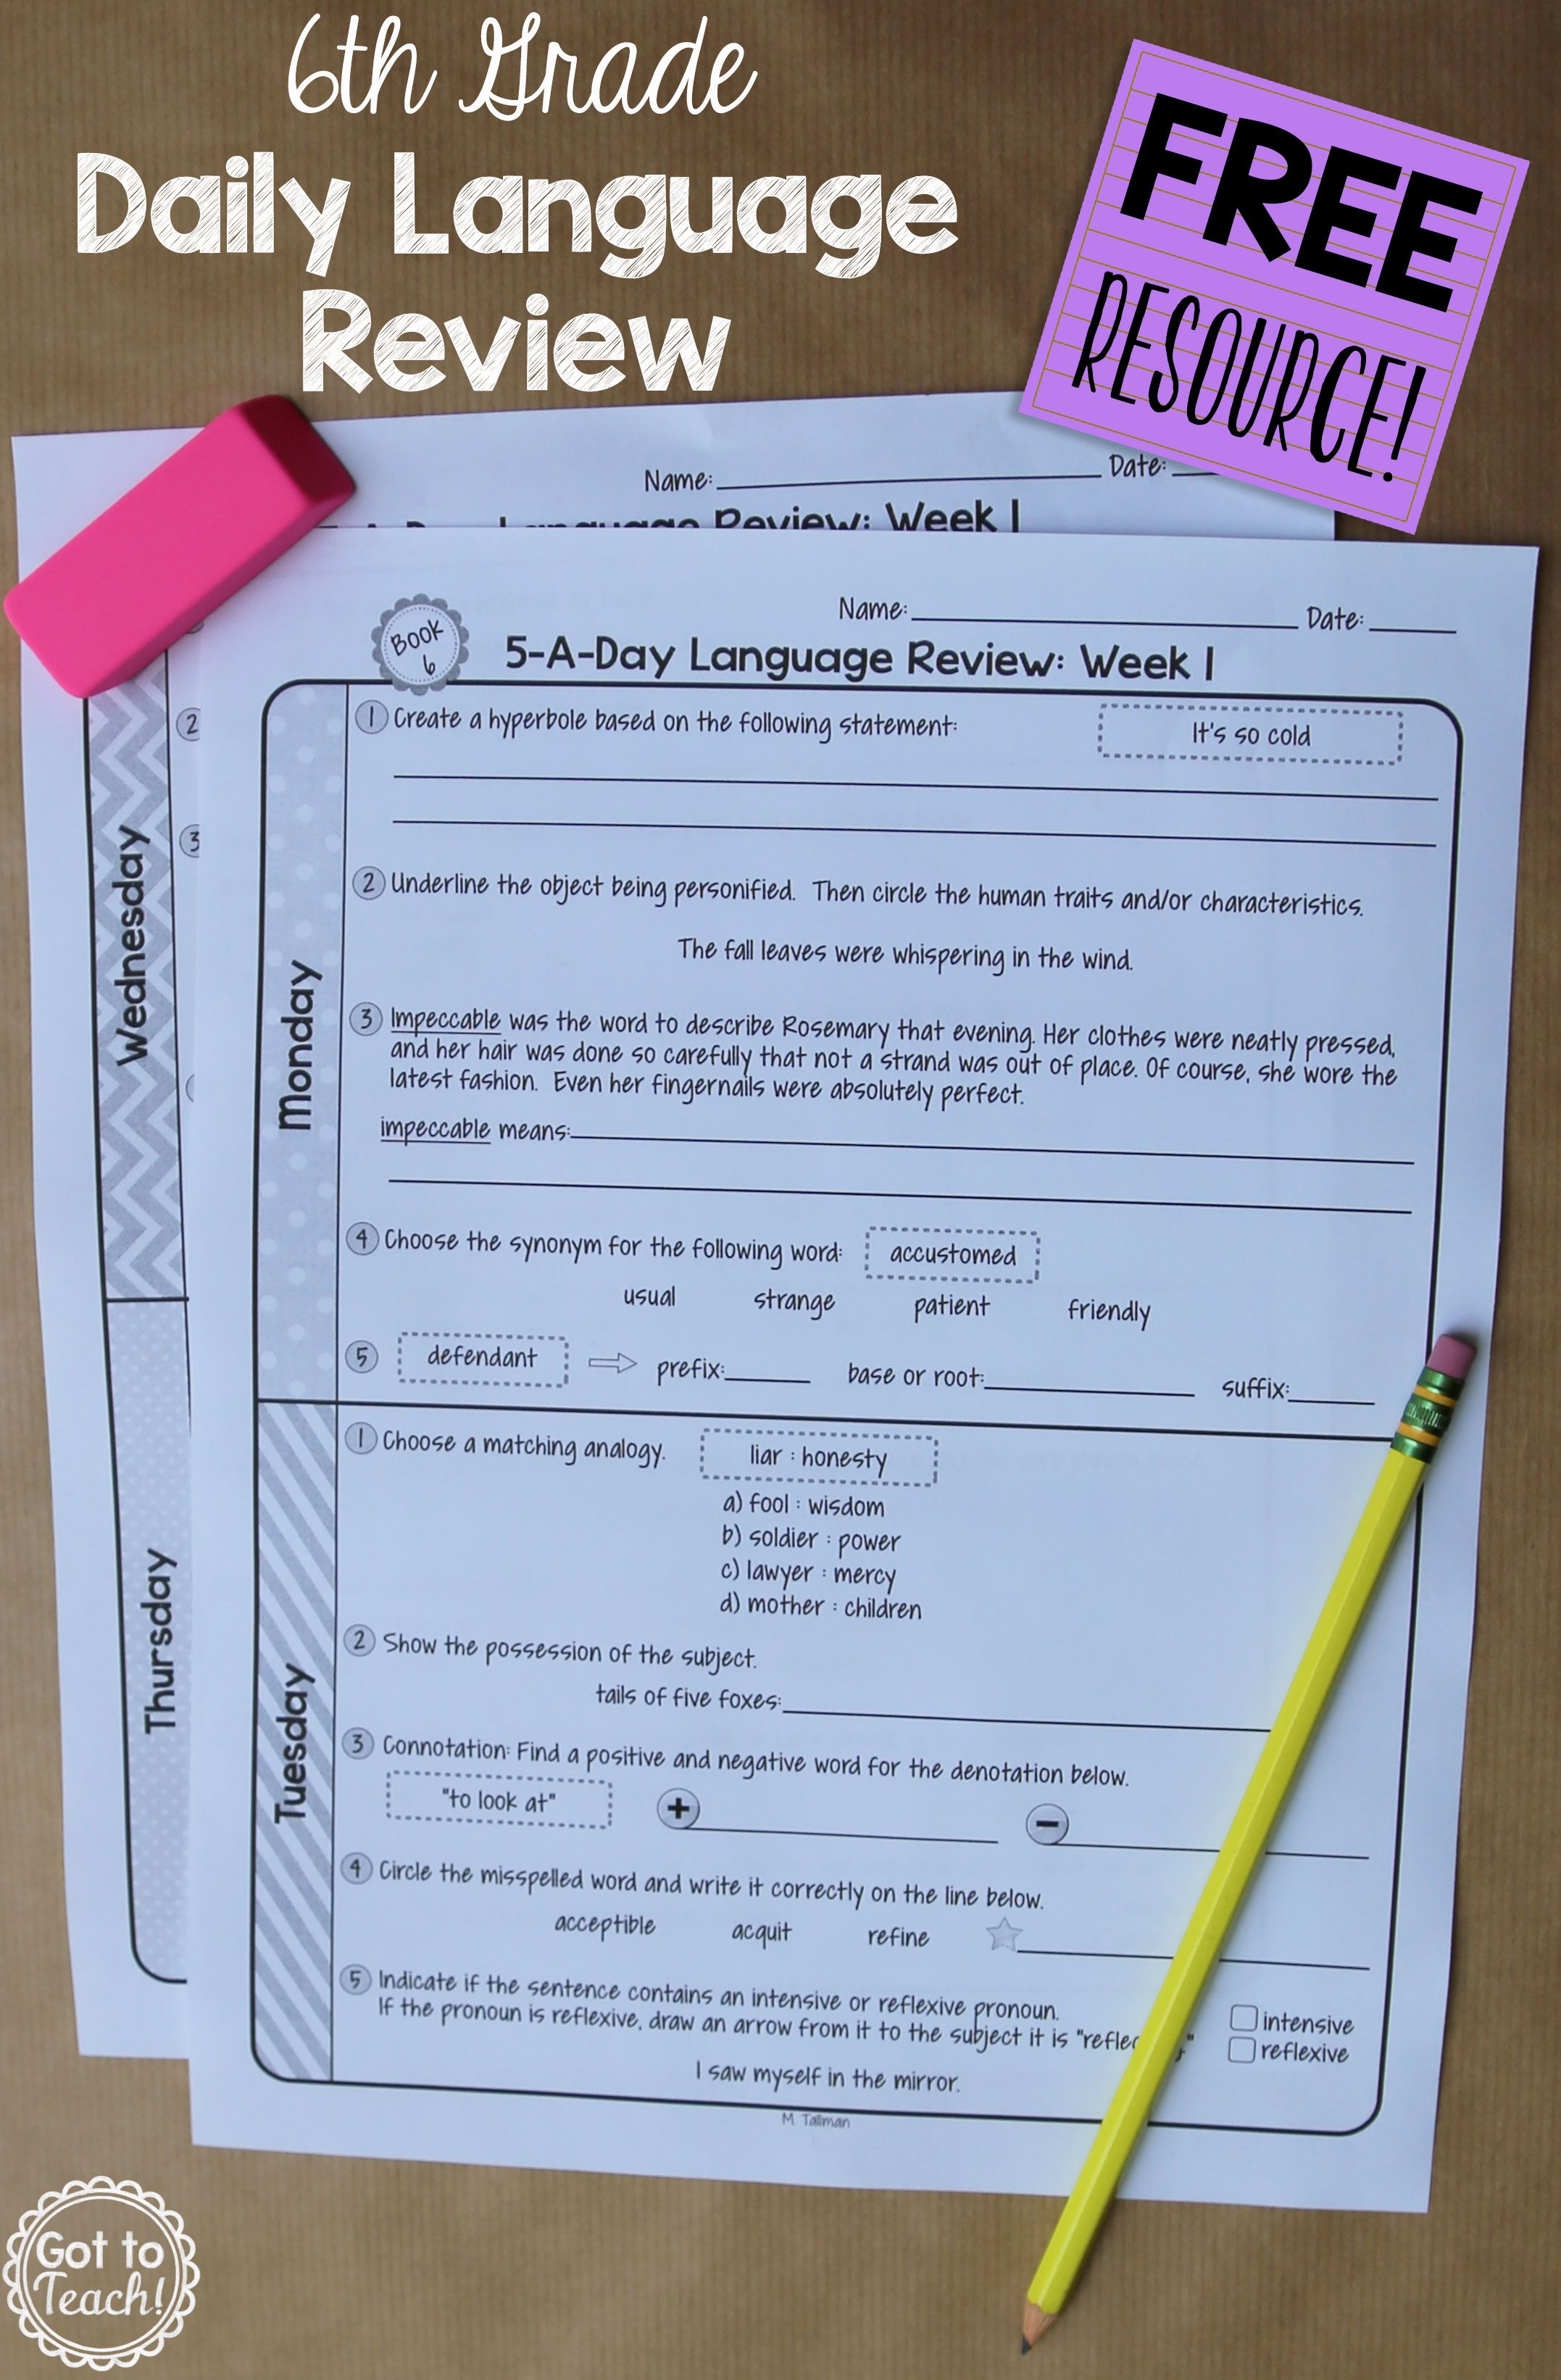 A free daily language review for 6th grade. Review